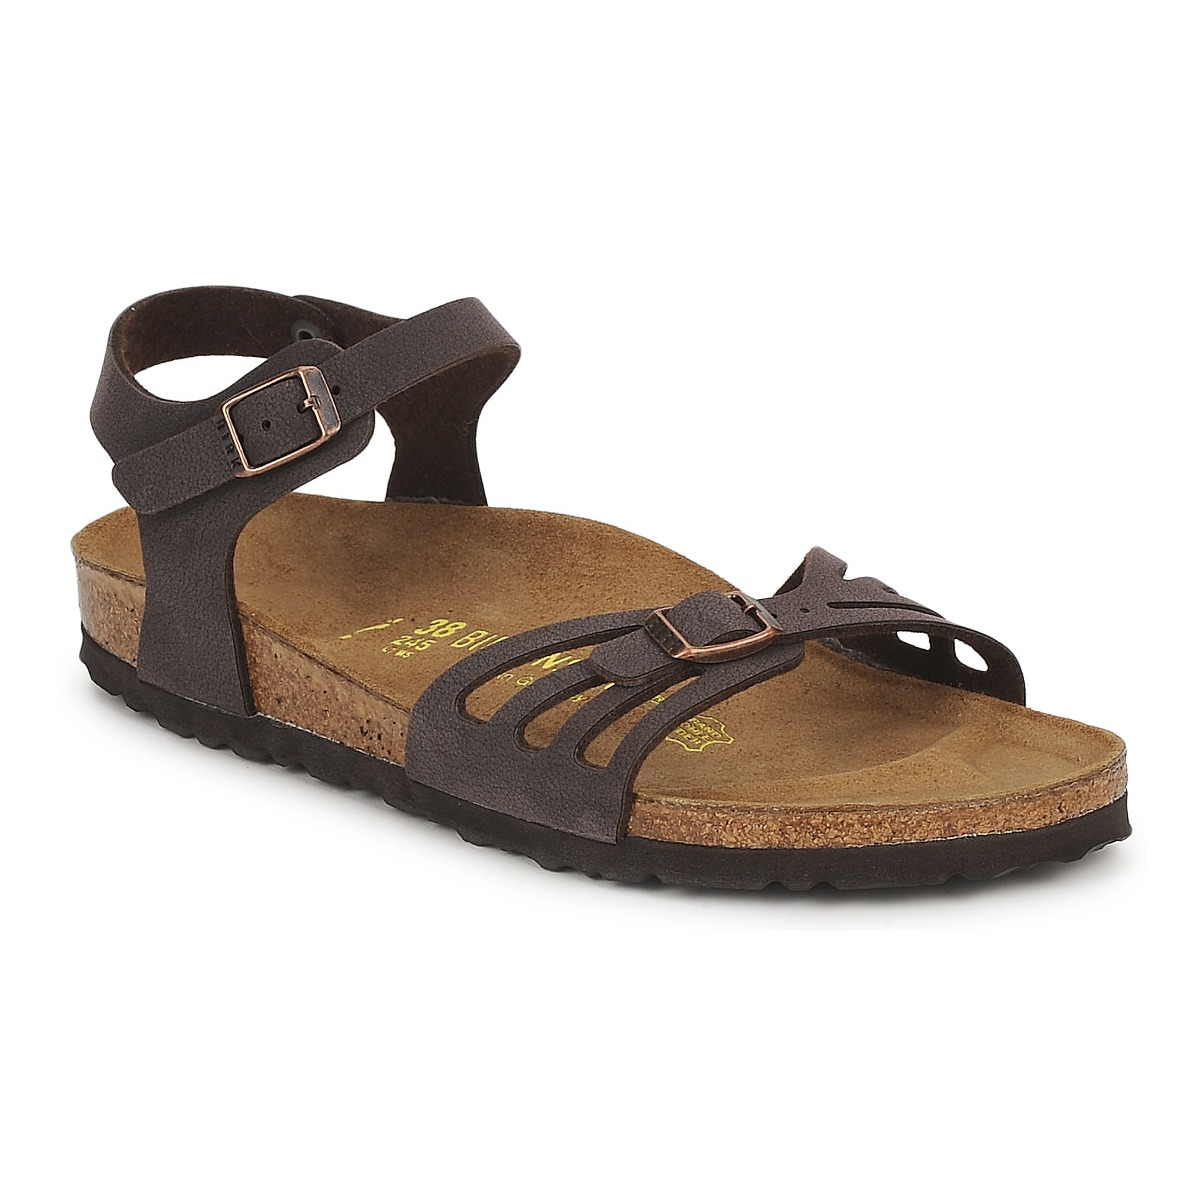 4f2bb4f061f591 Suede Birkenstock Rio Soft Footbed Brands Online Outlet